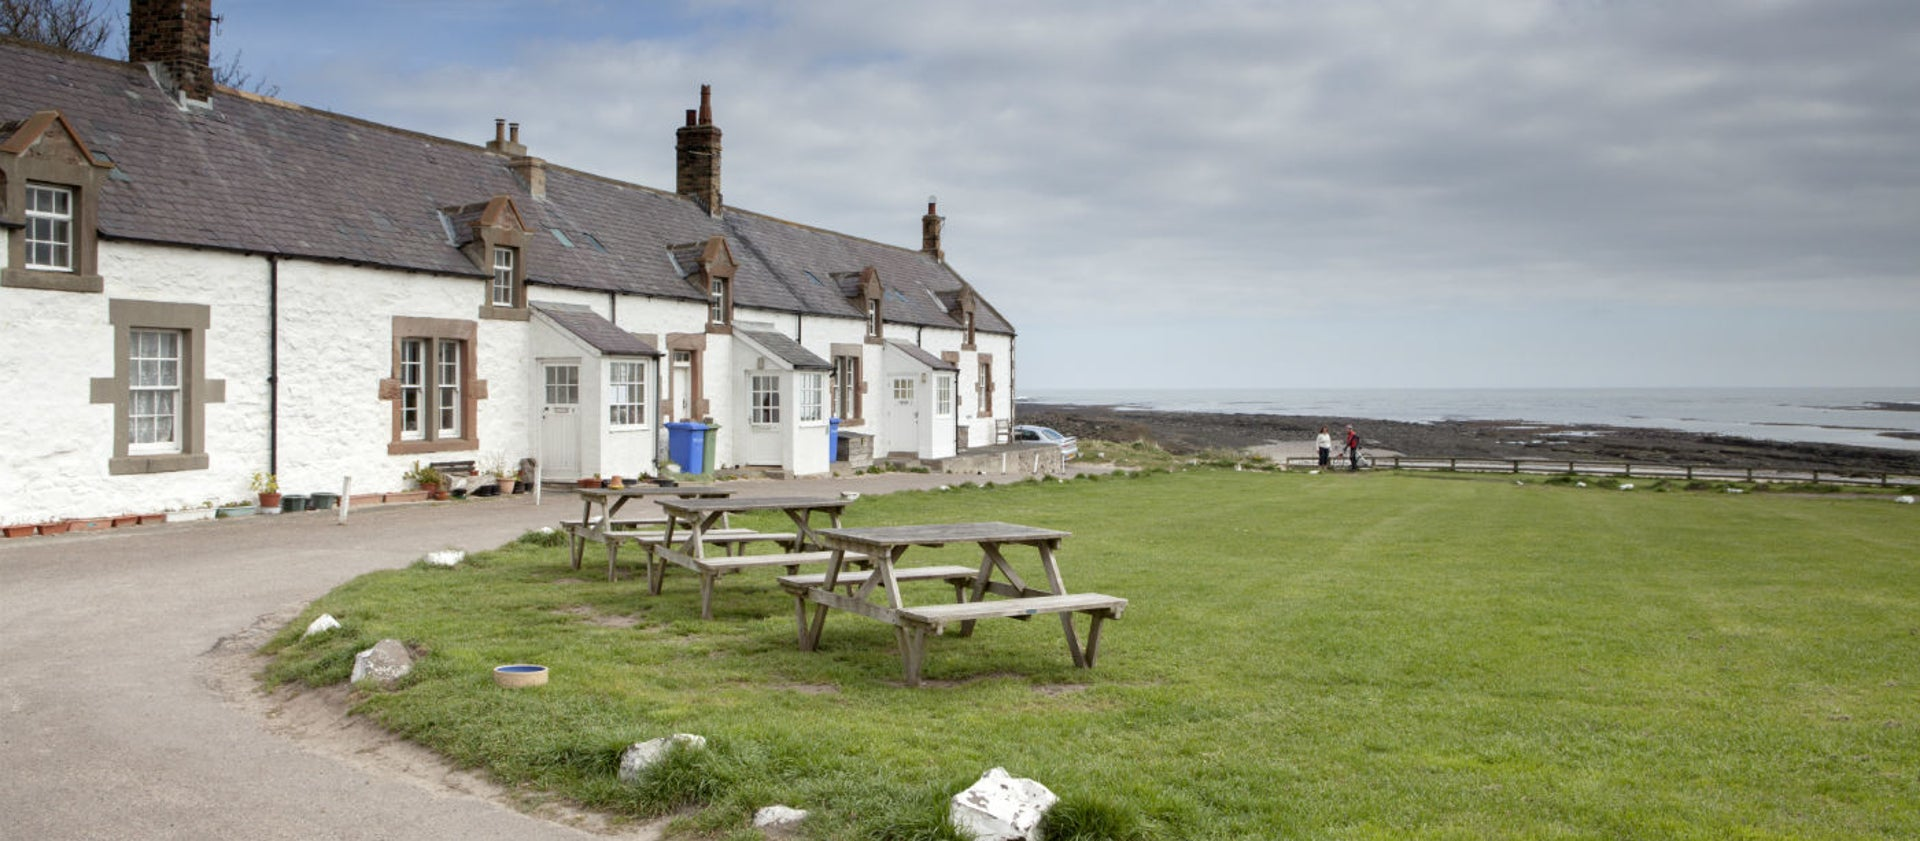 Holiday & country cottages in Northumberland | National Trust